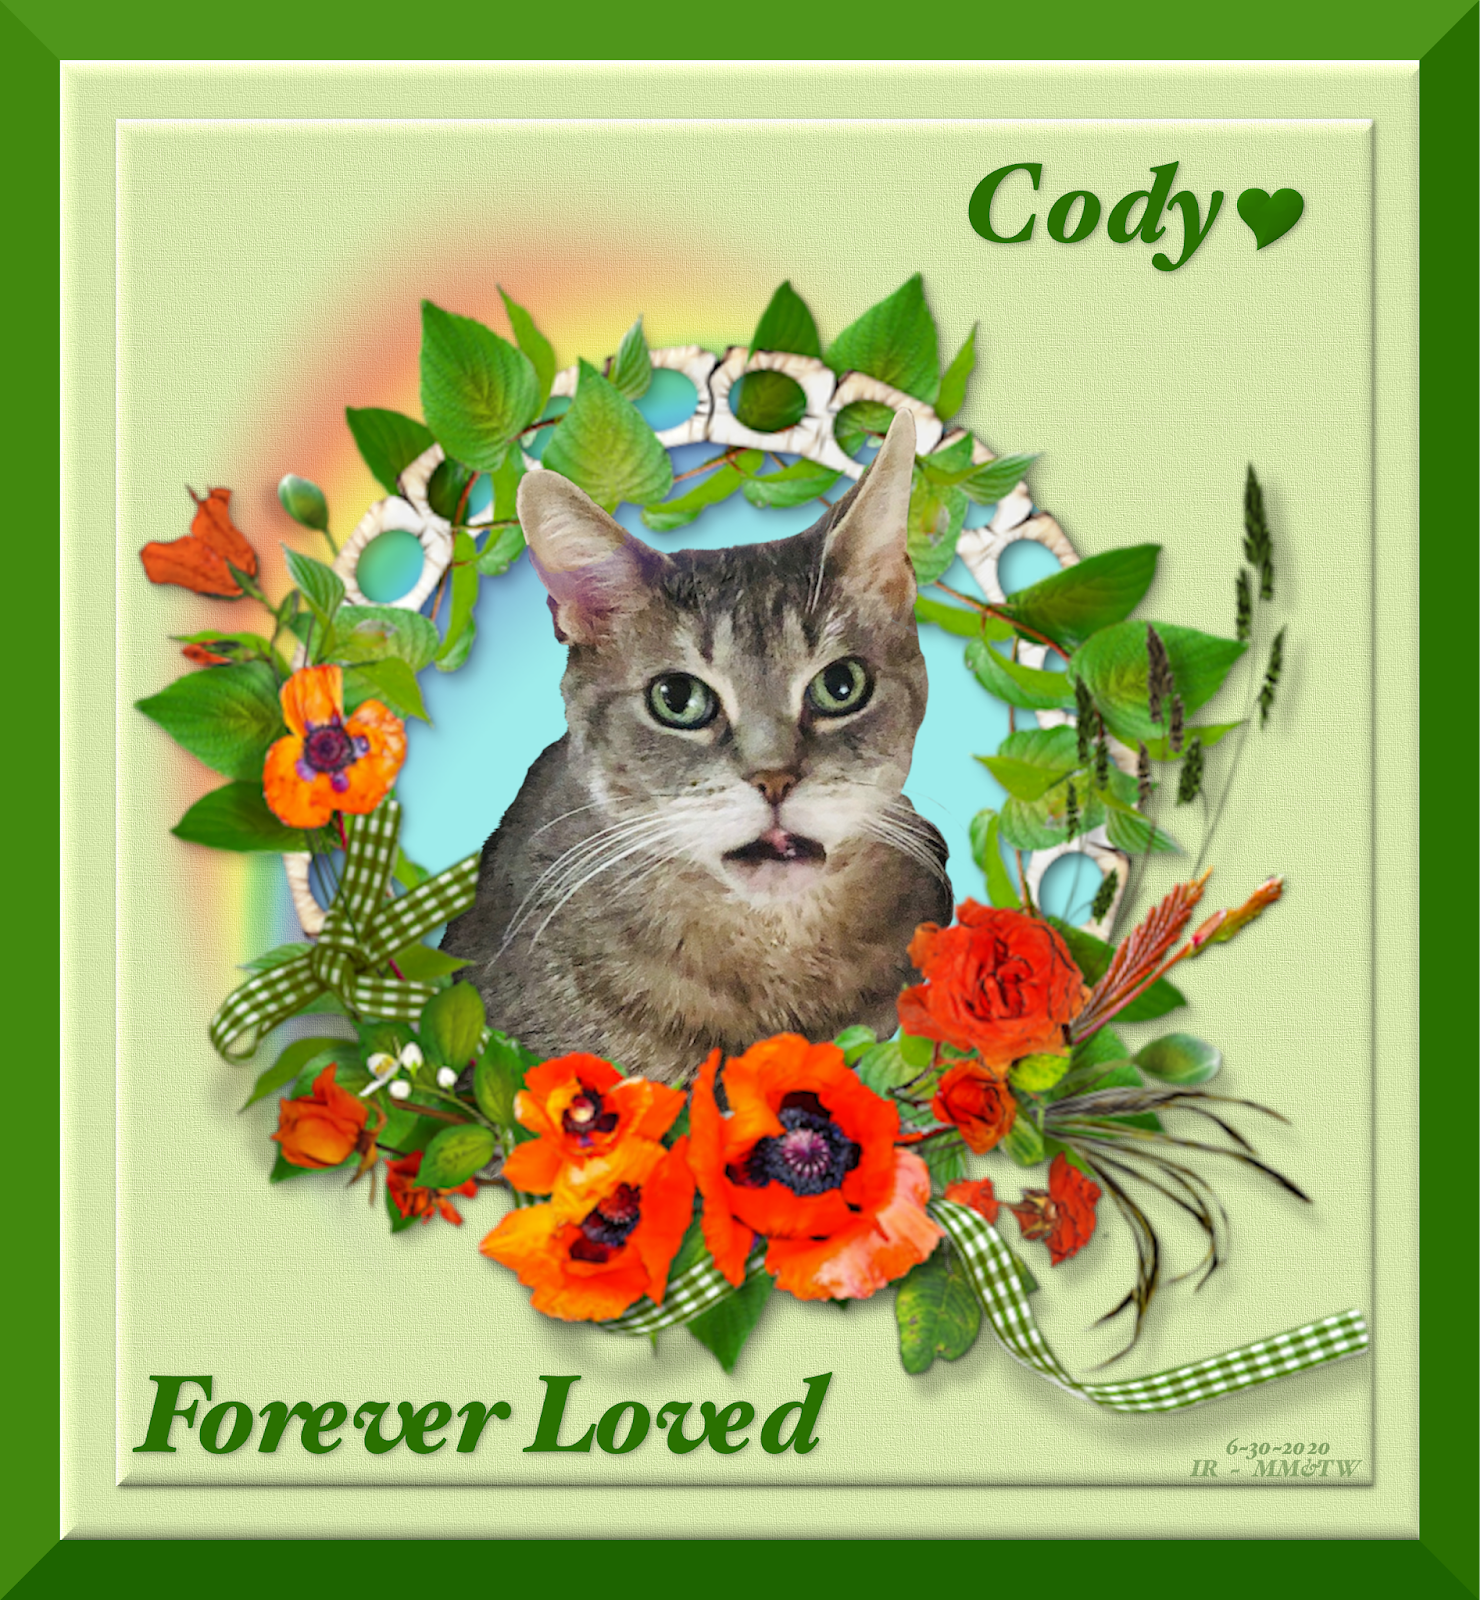 Cody Forever Loved